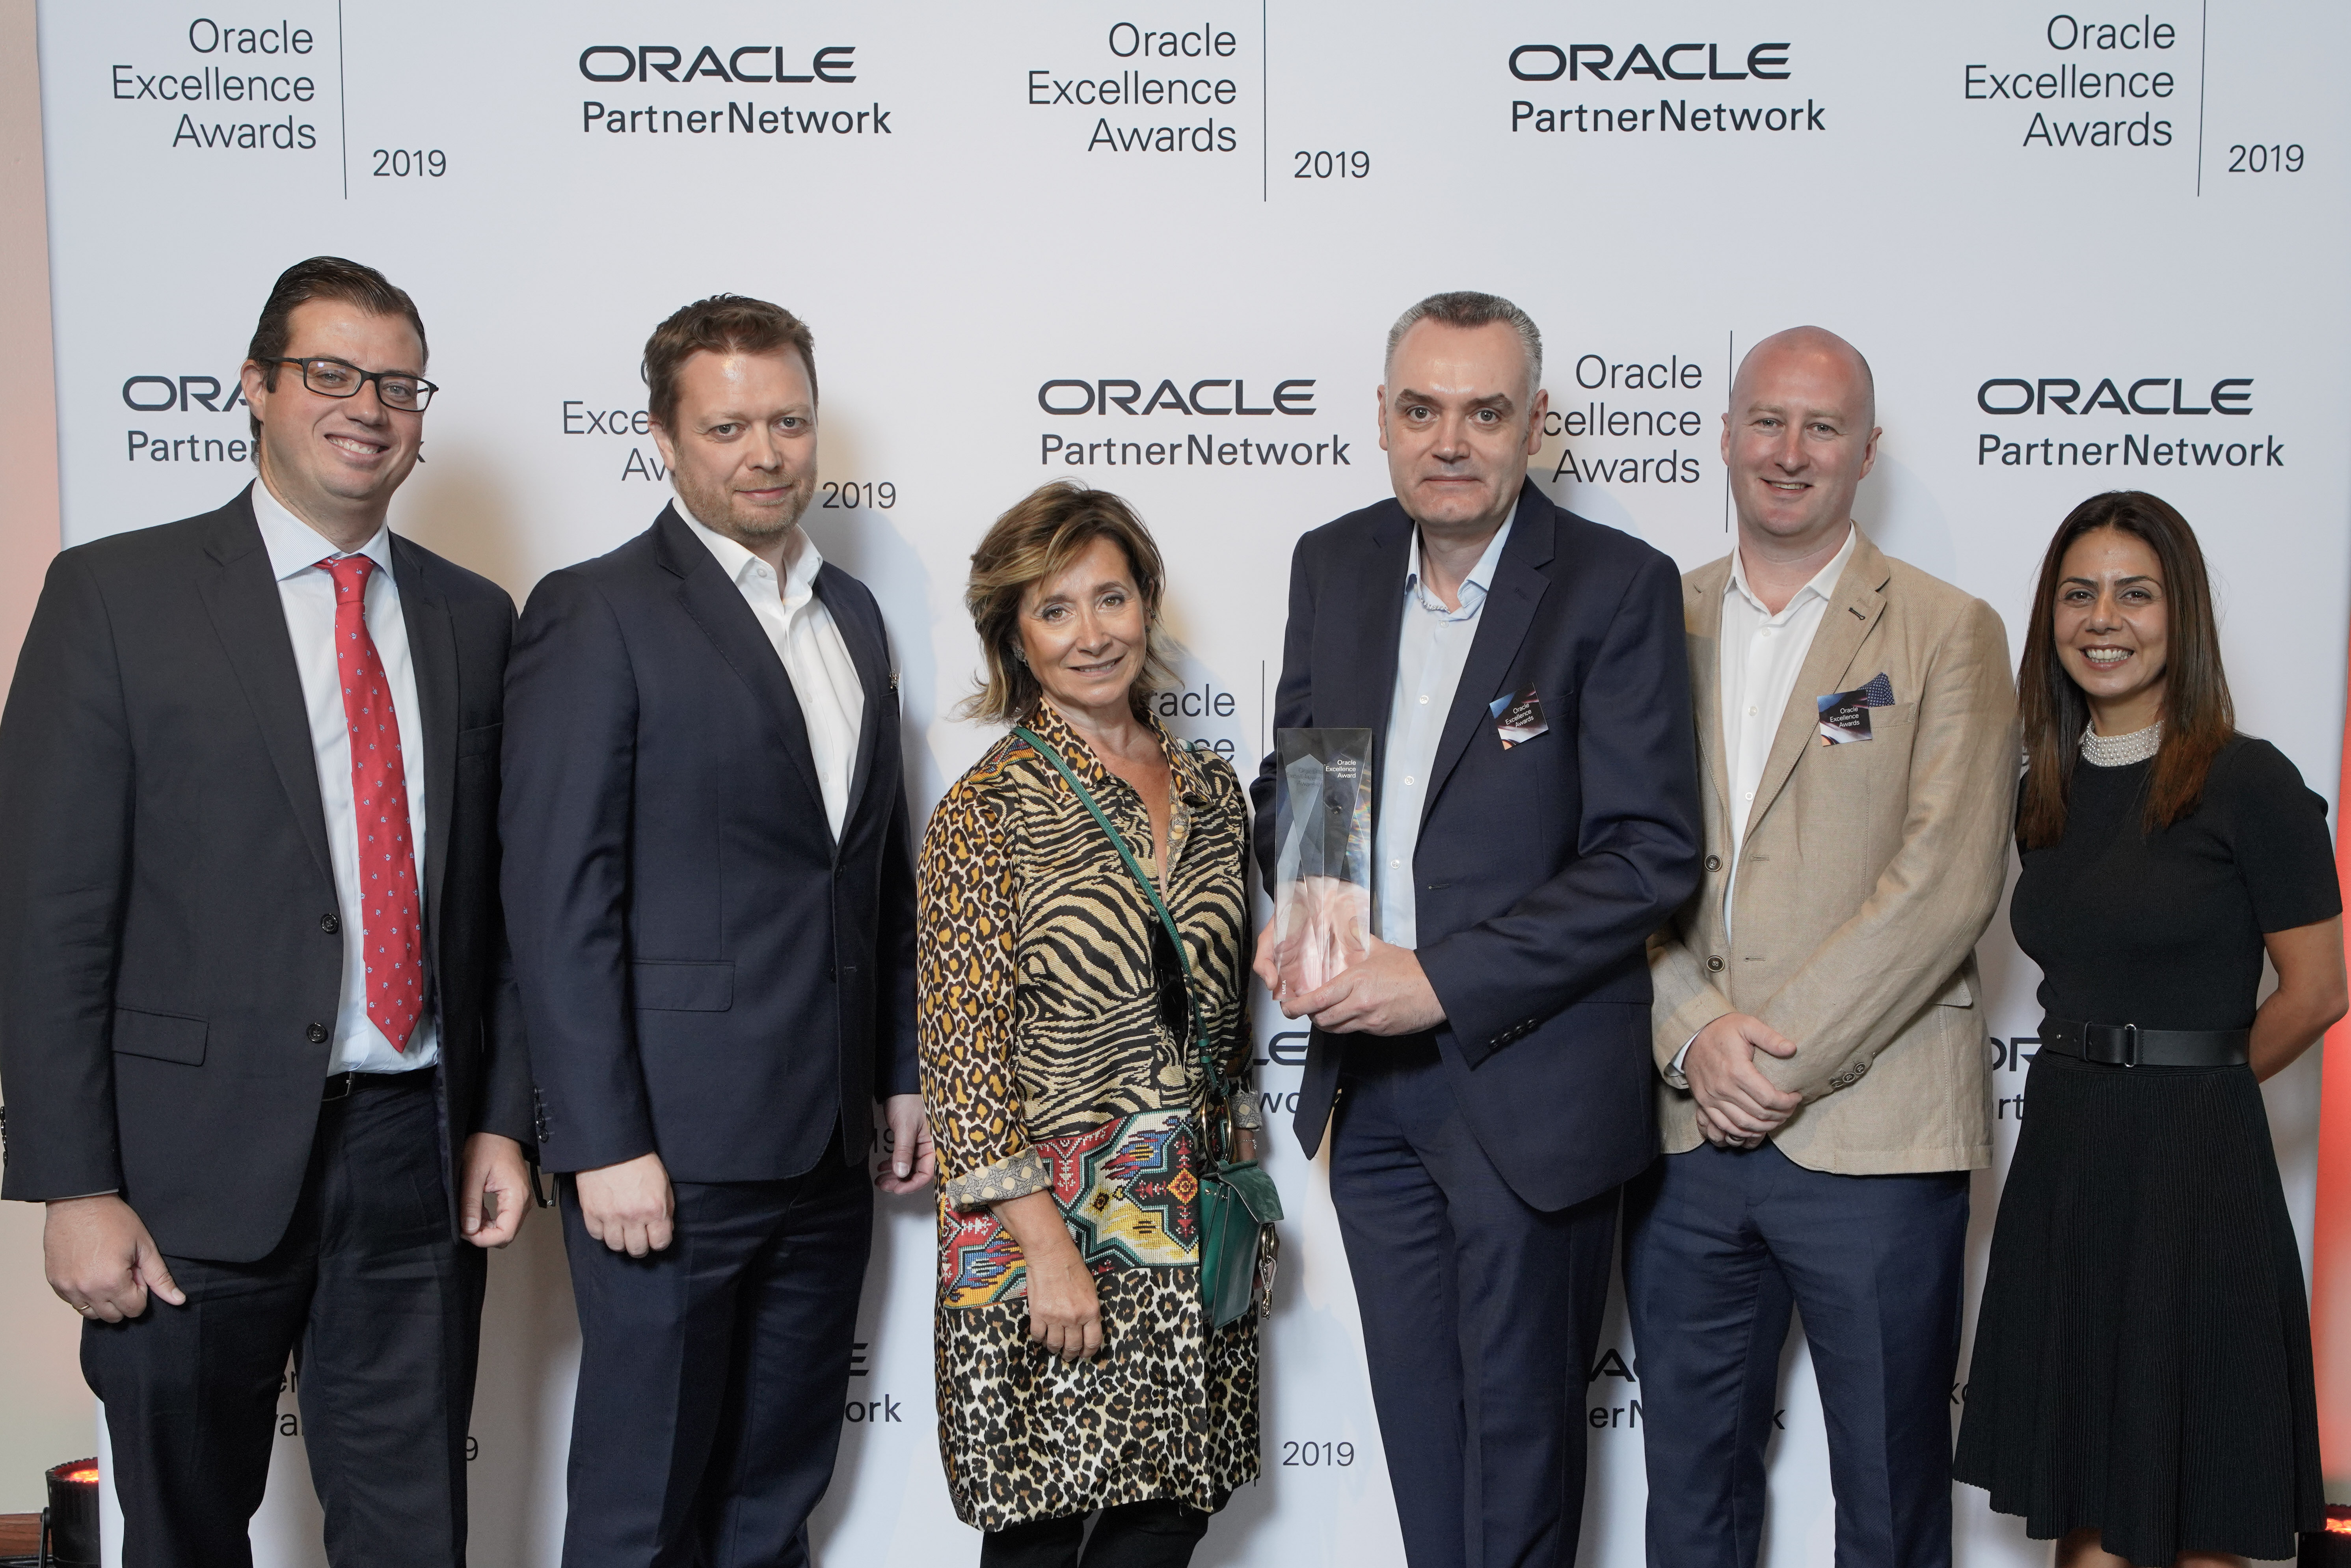 Explorer Recognised in Global Oracle Excellence Awards for Volume Sales in EMEA